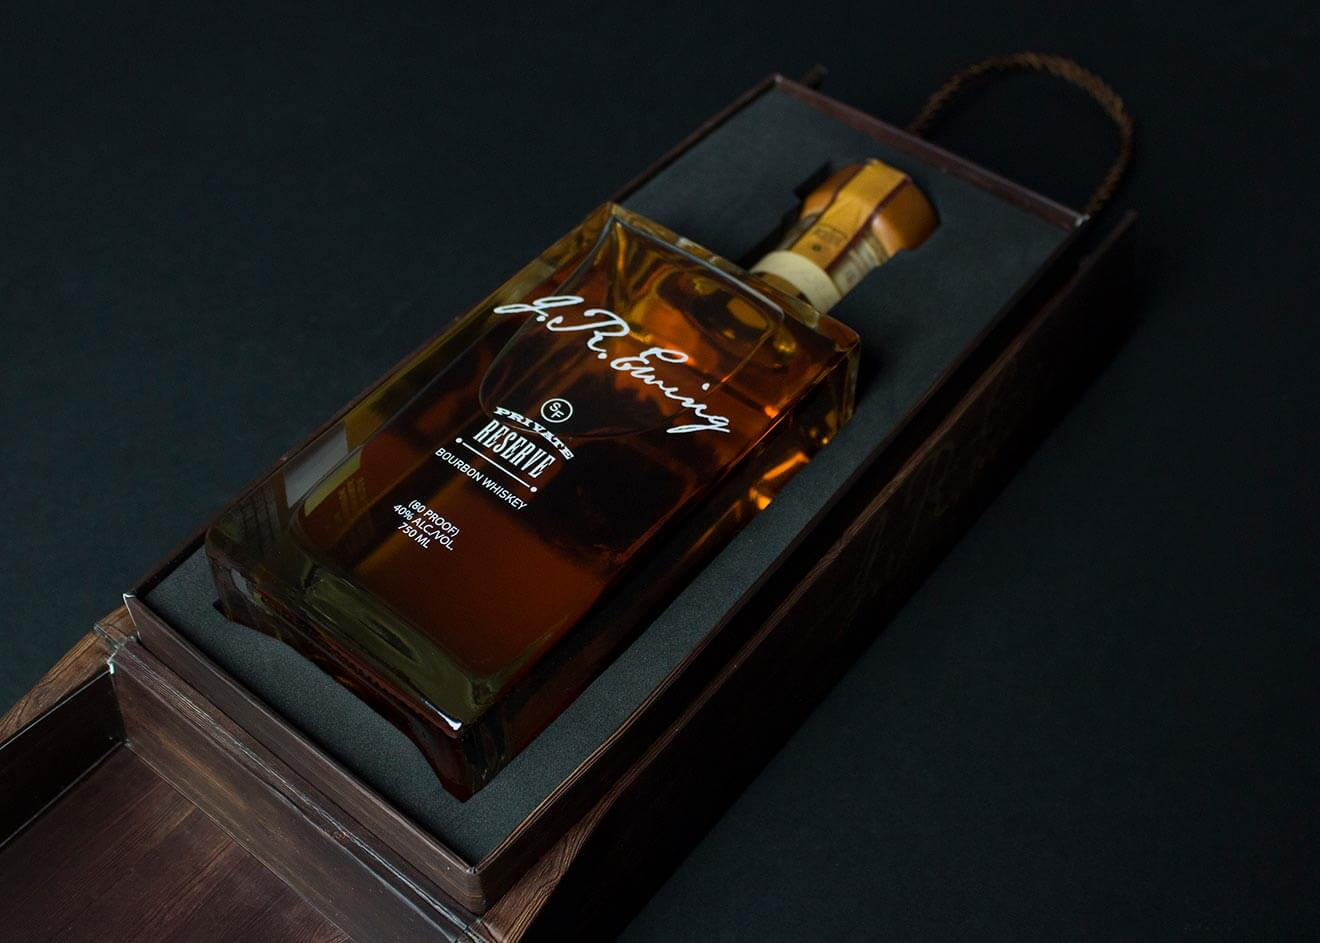 J.R. Ewing Bourbon Limited Edition Holiday Packaging